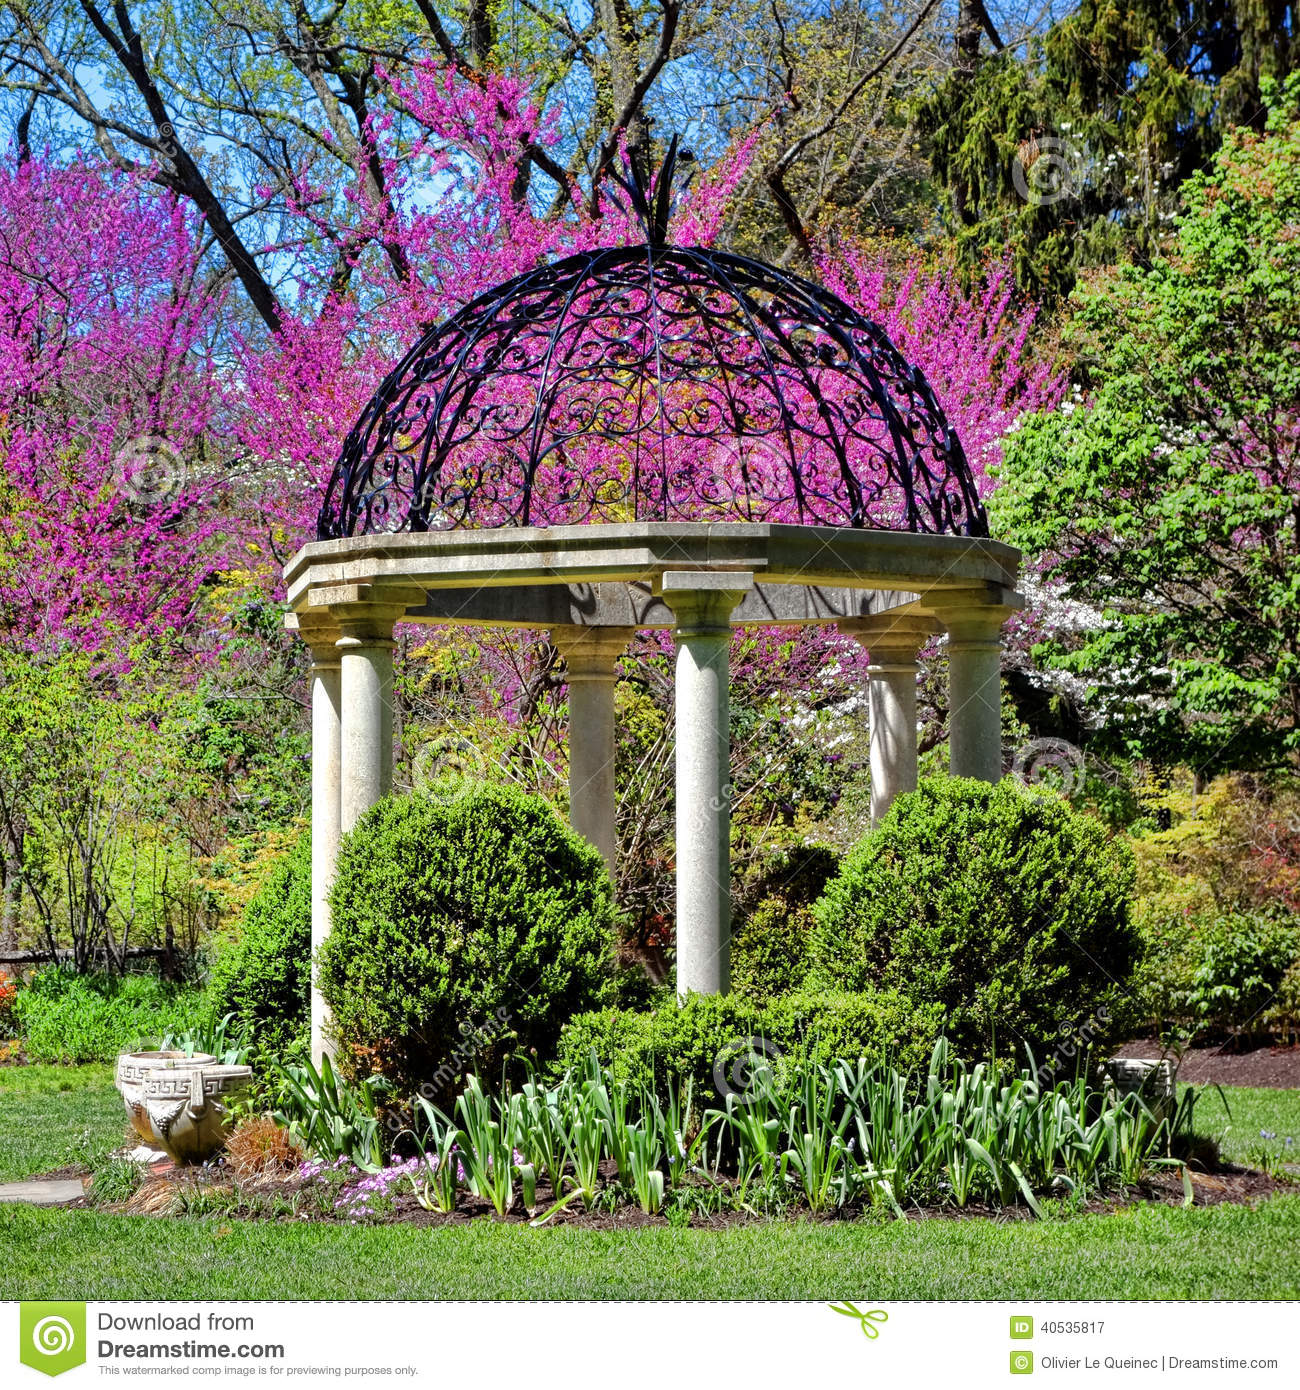 sayen park botanical gardens gazebo temple garden stock imagesayen park botanical gardens picturesque temple garden architectural gazebo with bright colors flowers on ornamental trees in the spring in hamilton square